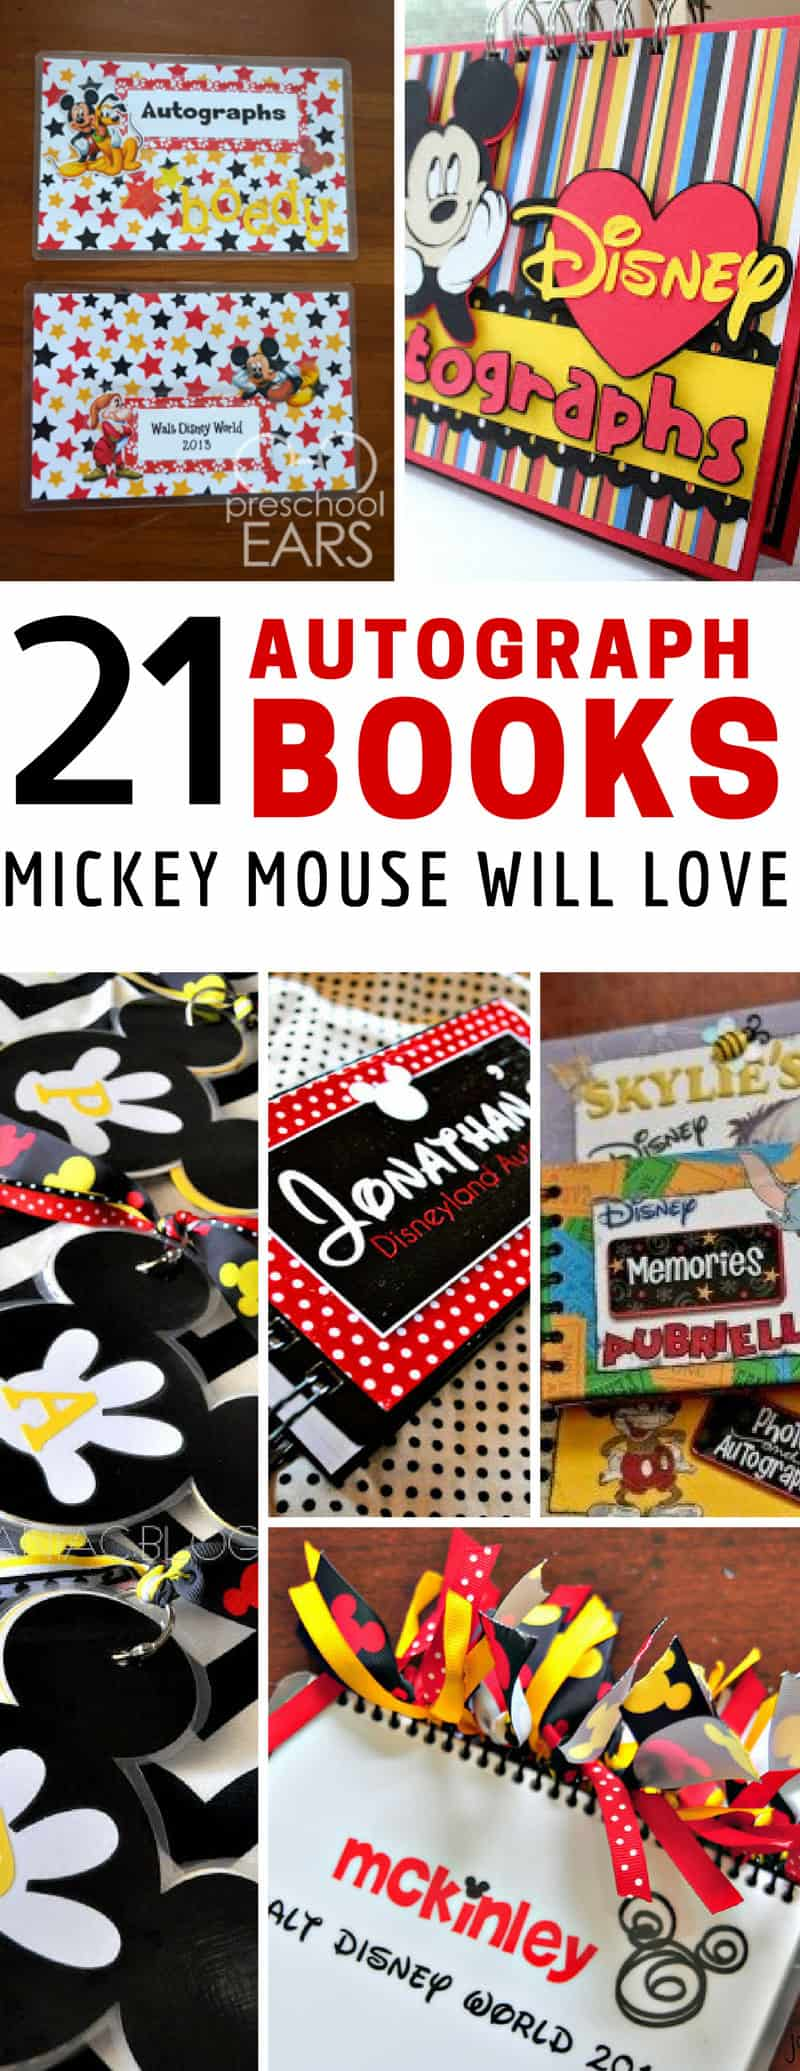 We need to make one of these DIY Disney autograph books for our trip! Thanks for sharing!